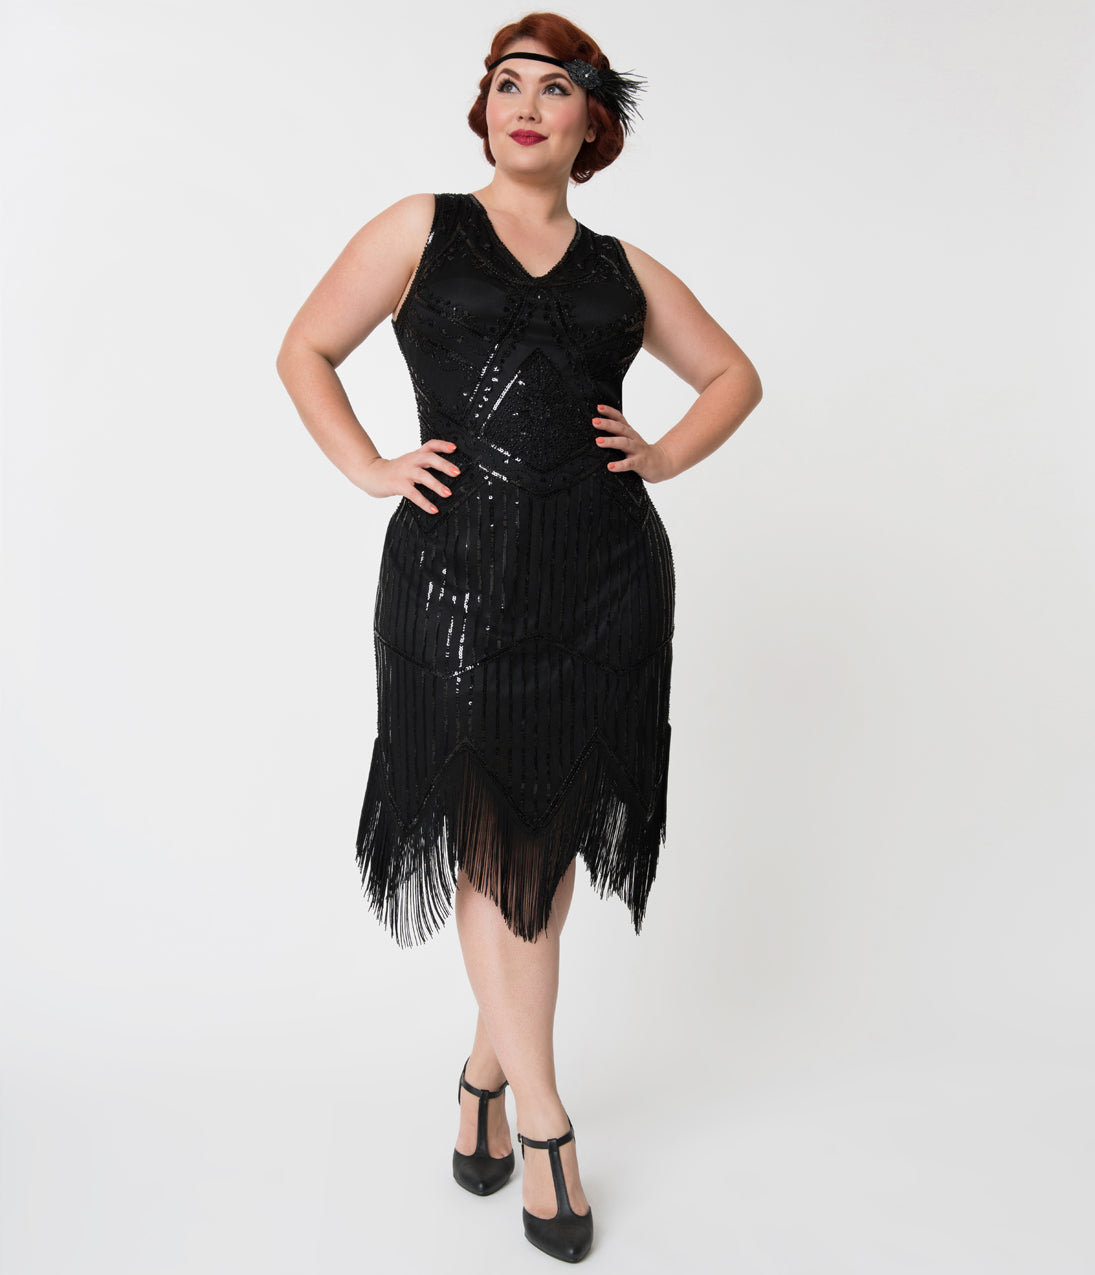 1920s Evening Gowns by Year Unique Vintage Plus Size 1920S Black Beaded Sequin Juliette Fringe Flapper Dress $68.00 AT vintagedancer.com